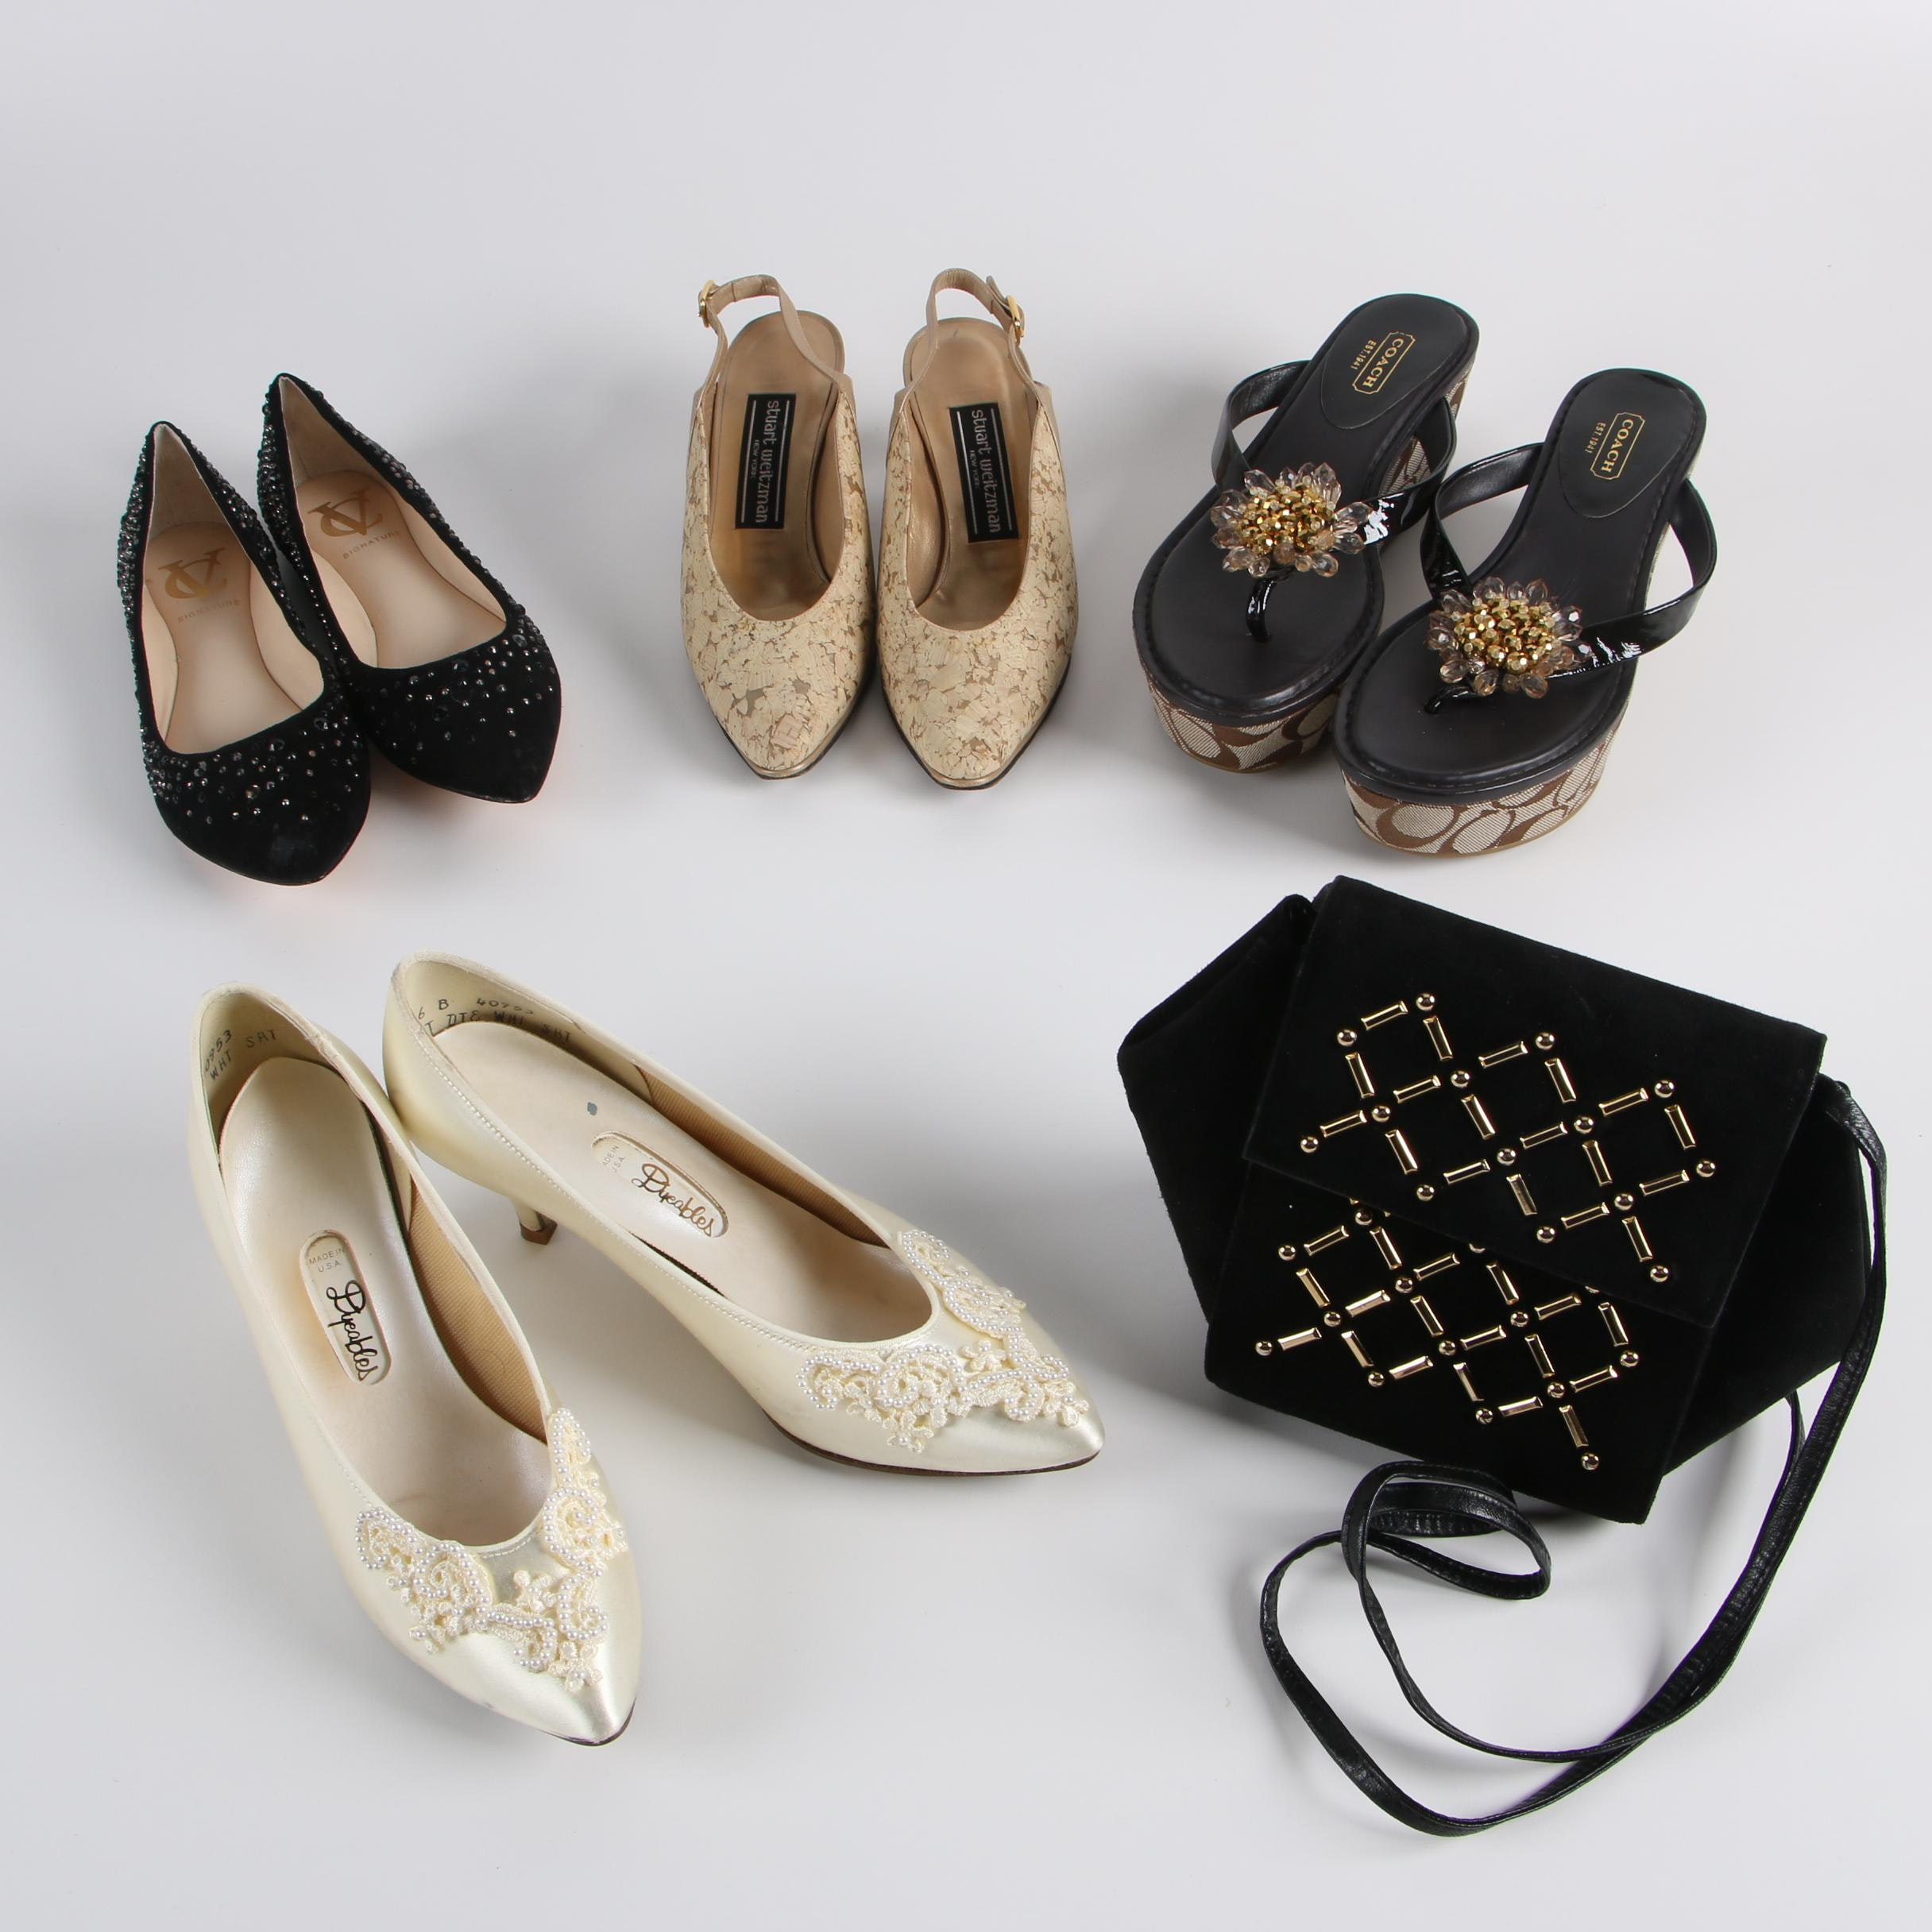 Women's Shoes and Handbag including Coach and Stuart Weitzman